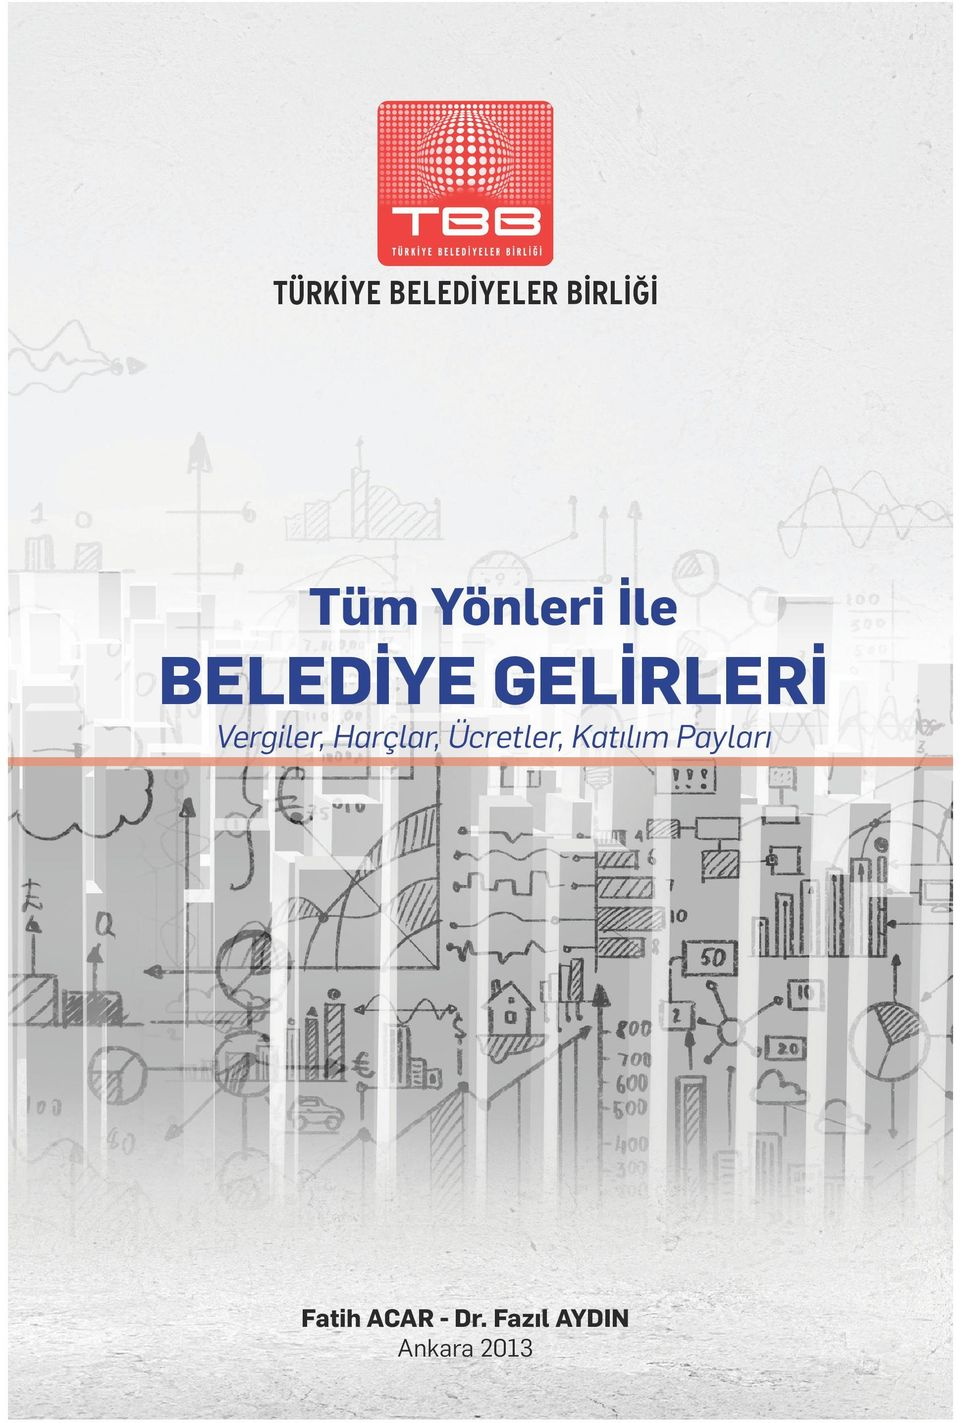 Ankara Üniversitesi nde AT Temel Eğitim Sertifika Programı ile Avrupa Topluluğu Uzmanlık Eğitim Sertifika Programı nı, Harvard Üniversitesi Program on Tax Analysis and Revenue Forecasting sertifika